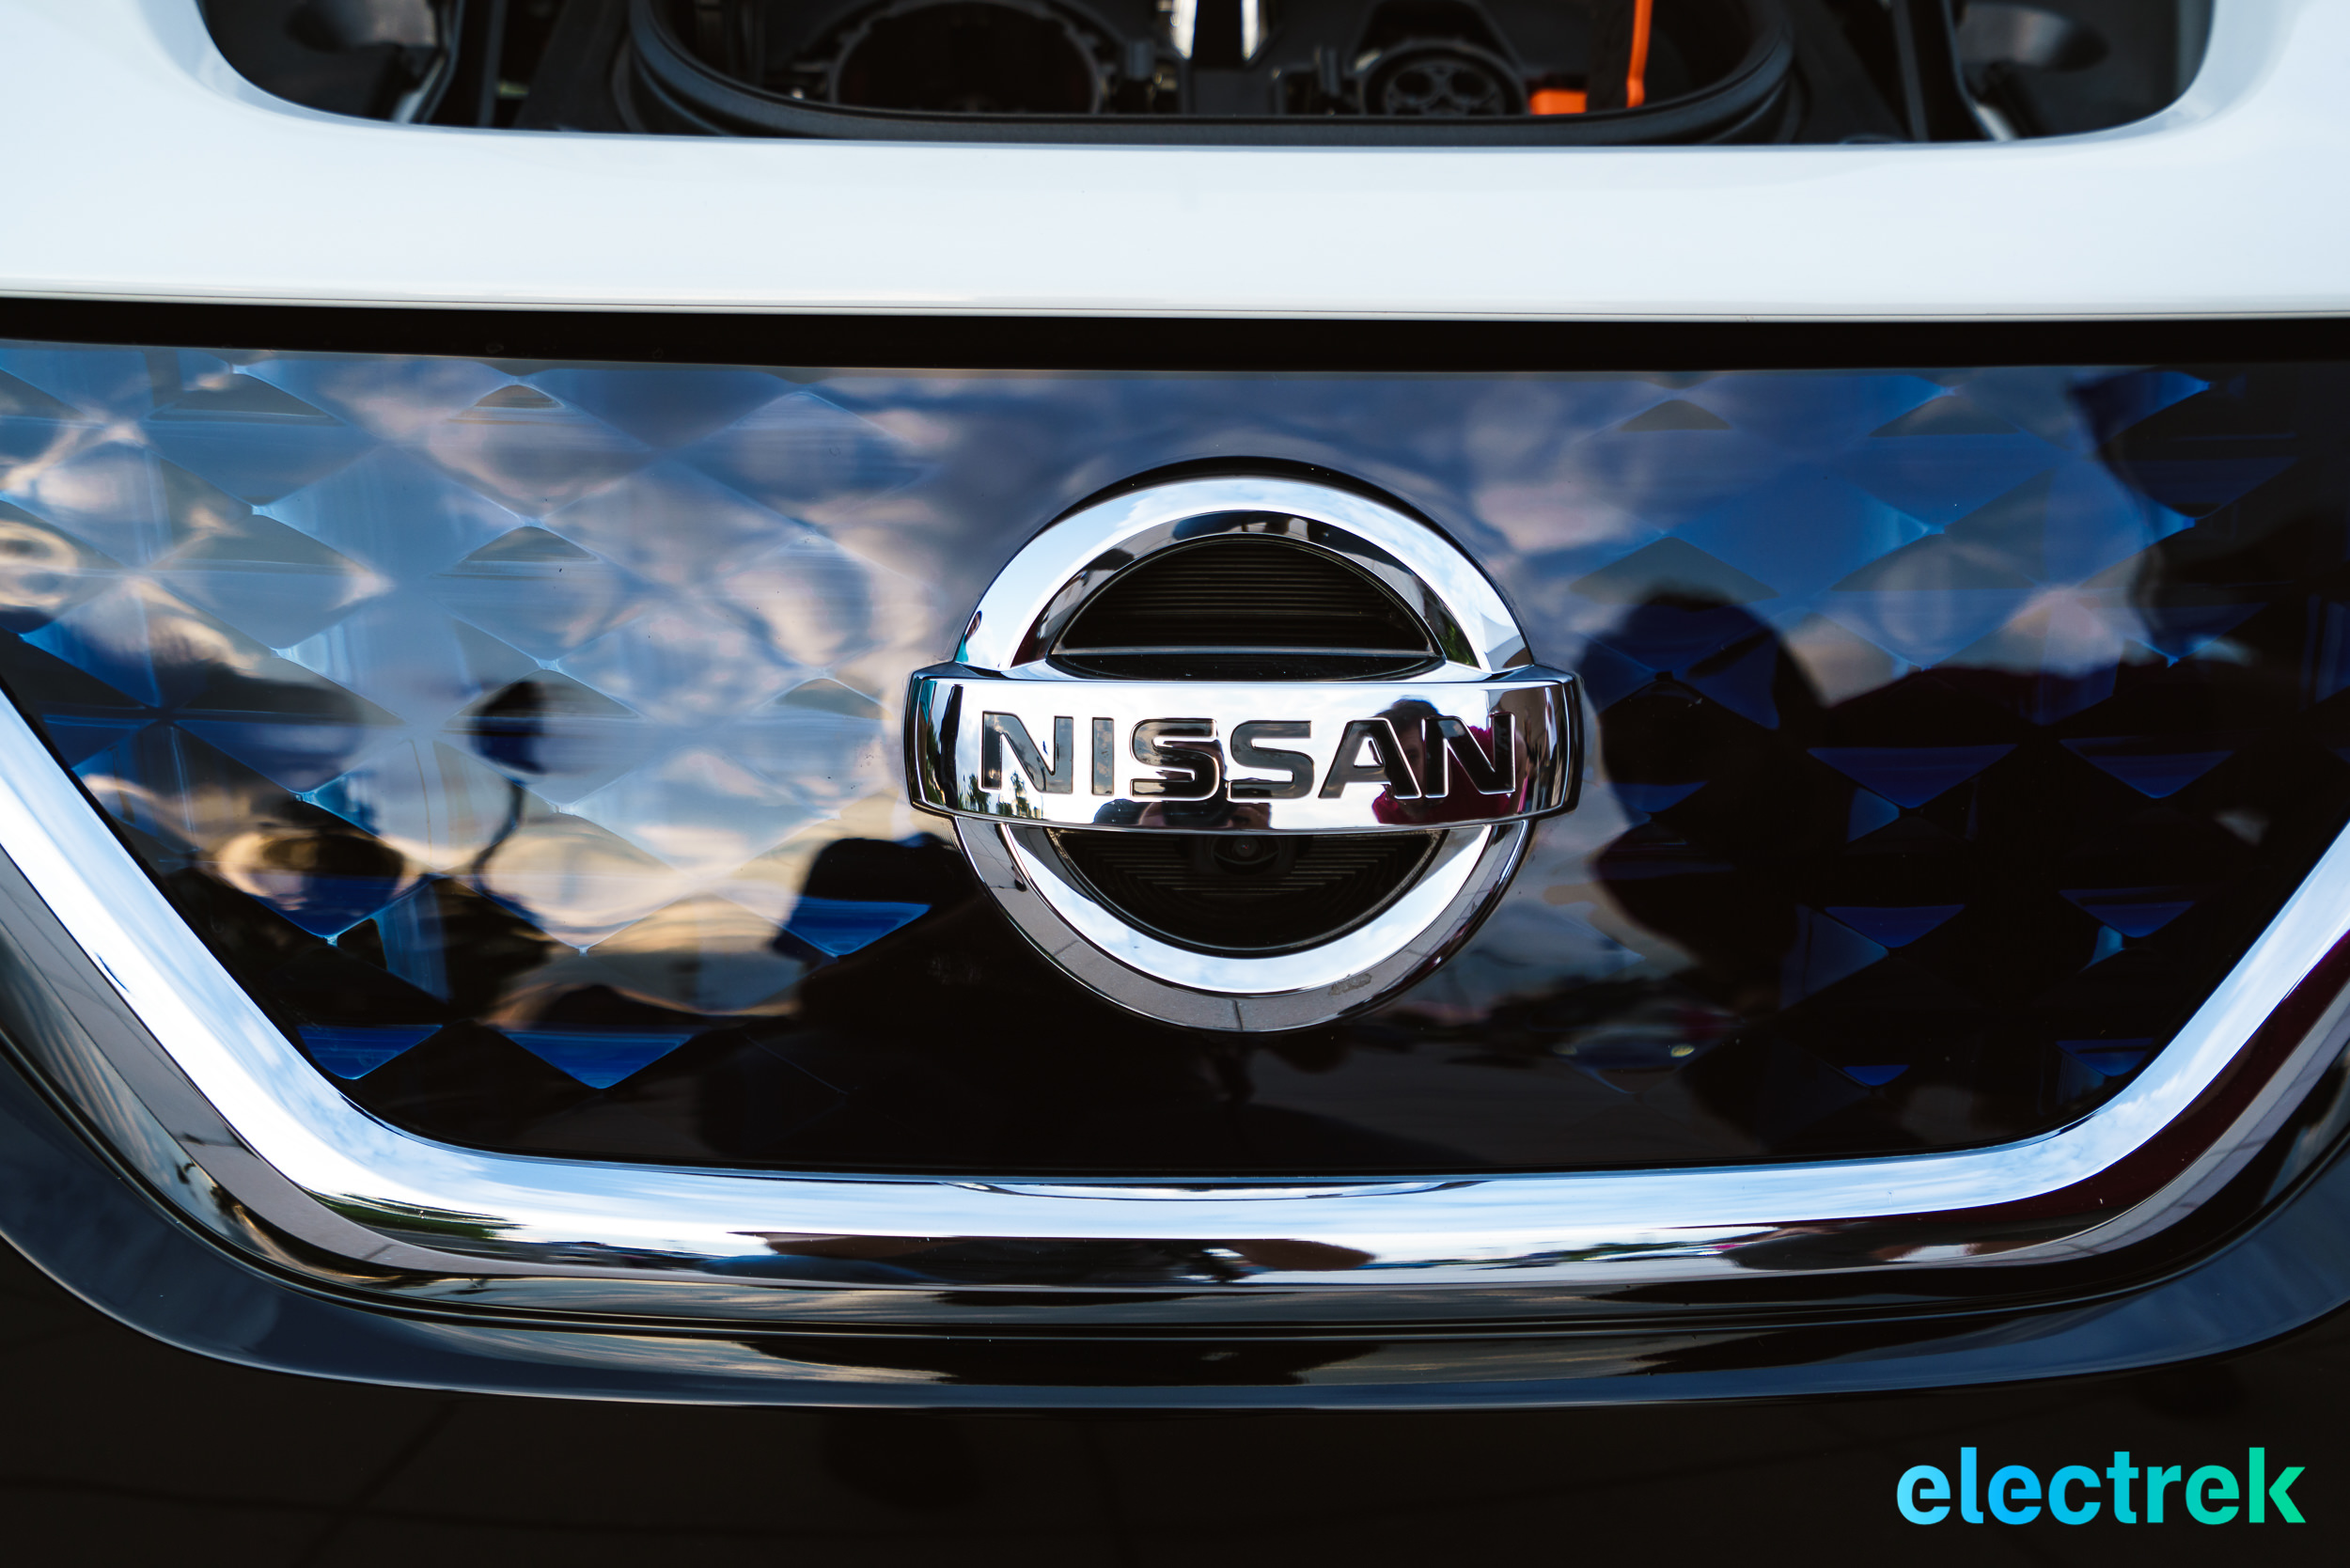 74 New Nissan Leaf 2018 Logo grille design National Drive ...